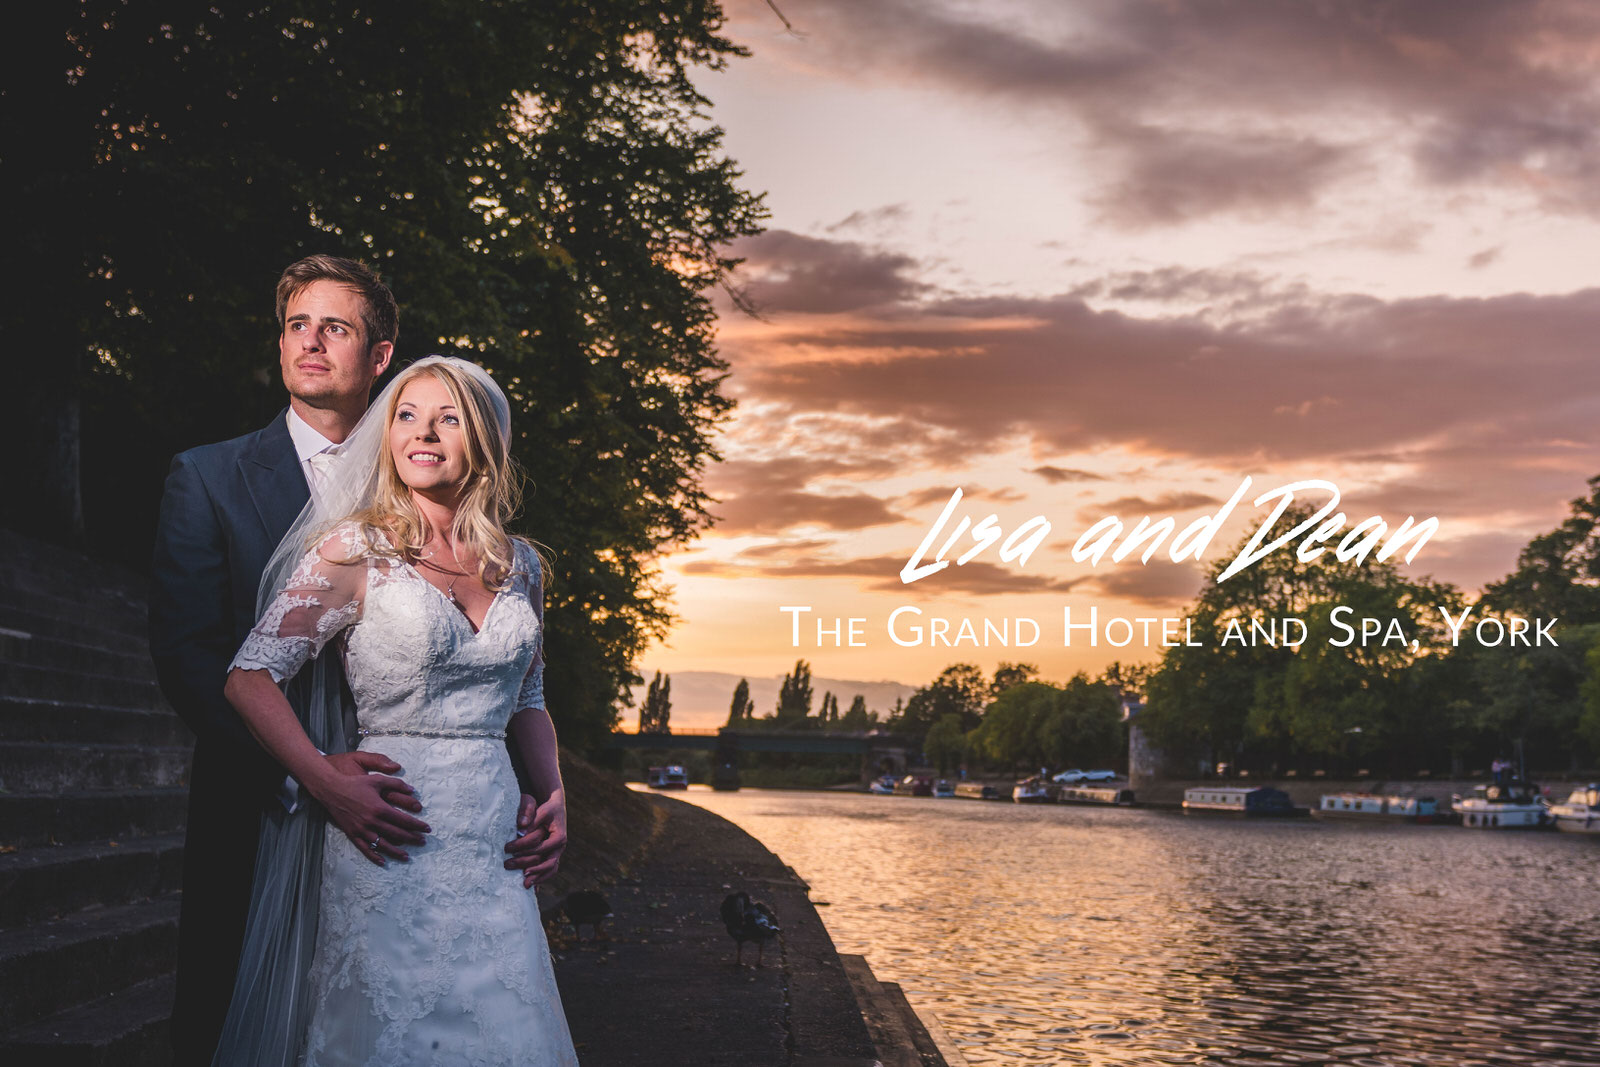 Lisa and Dean's Wedding - The Grand Hotel and Spa, York